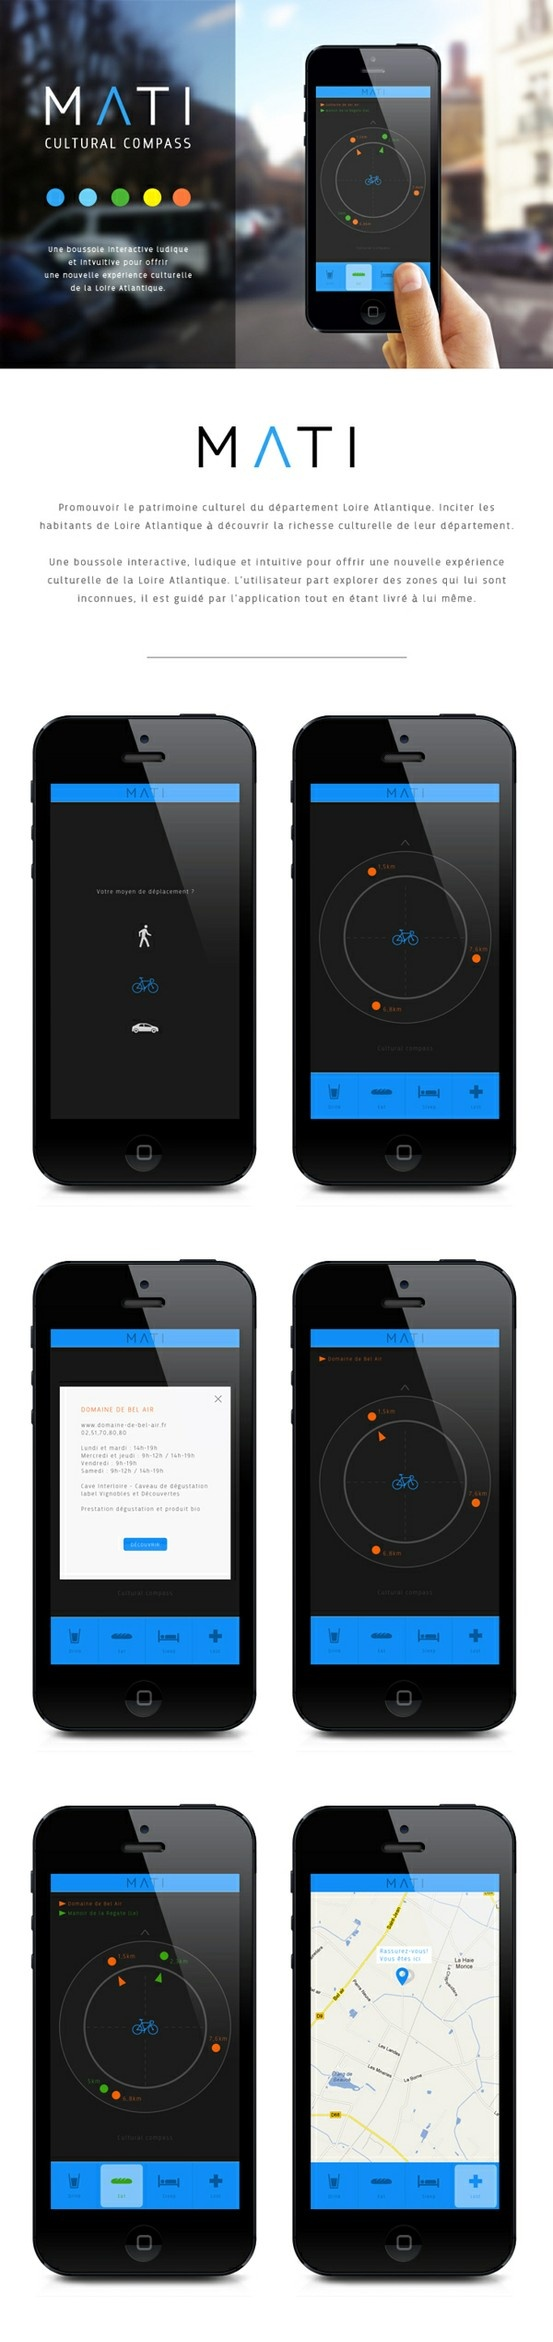 #mobileui #ui #interface #iOS#ResponsiveDesign #Web #UI #UX #WordPress #Resposive Design #Website #Graphics